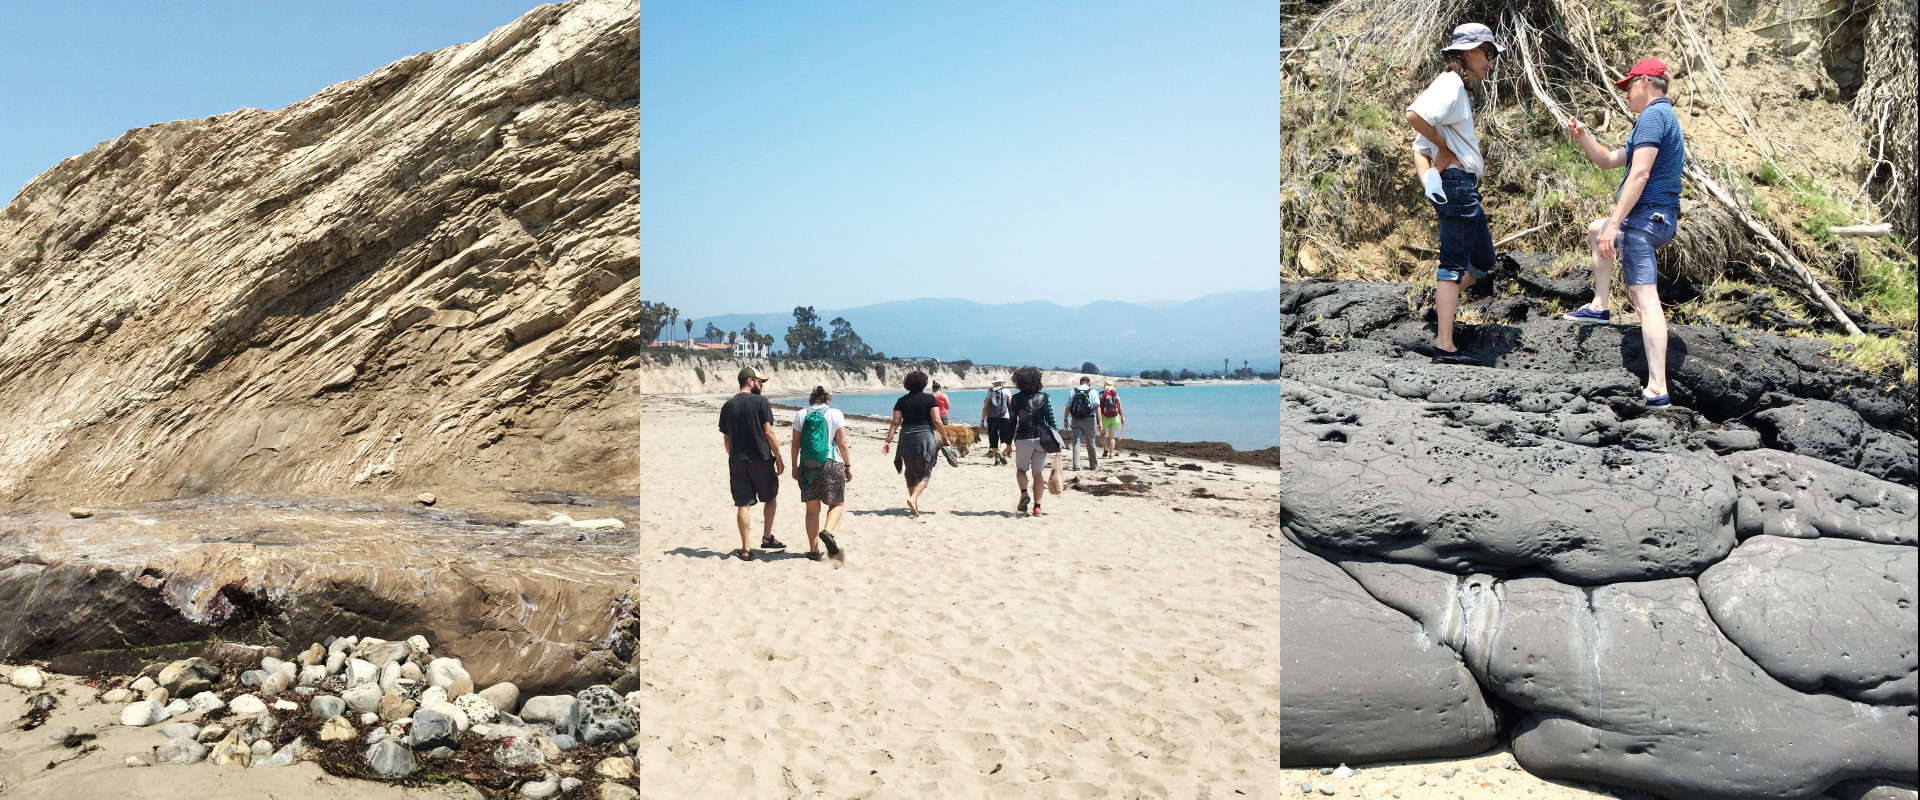 Earth scientists on a beach hike in Santa Barbara County, California.